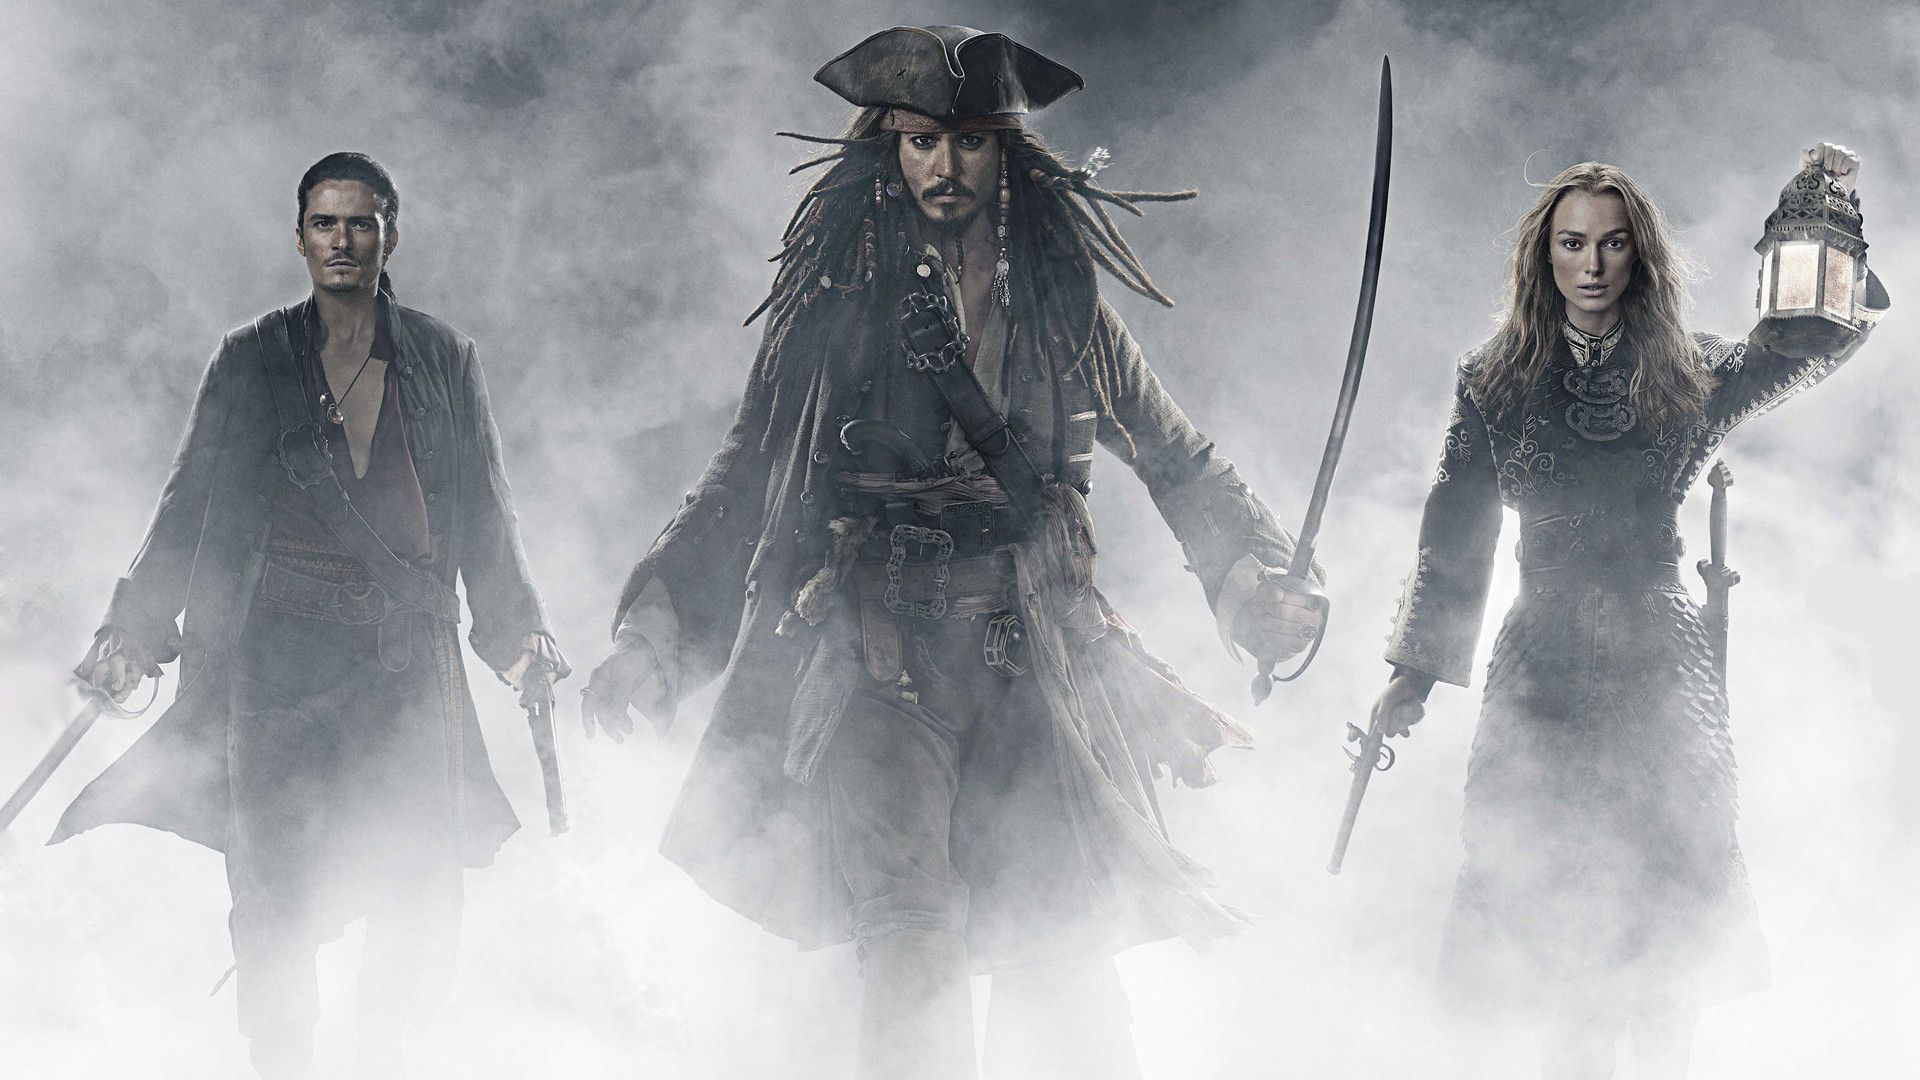 Pirates of the caribbean wallpaper for mac 3tv awesomeness pirates of the caribbean - Pirates of the caribbean images hd ...